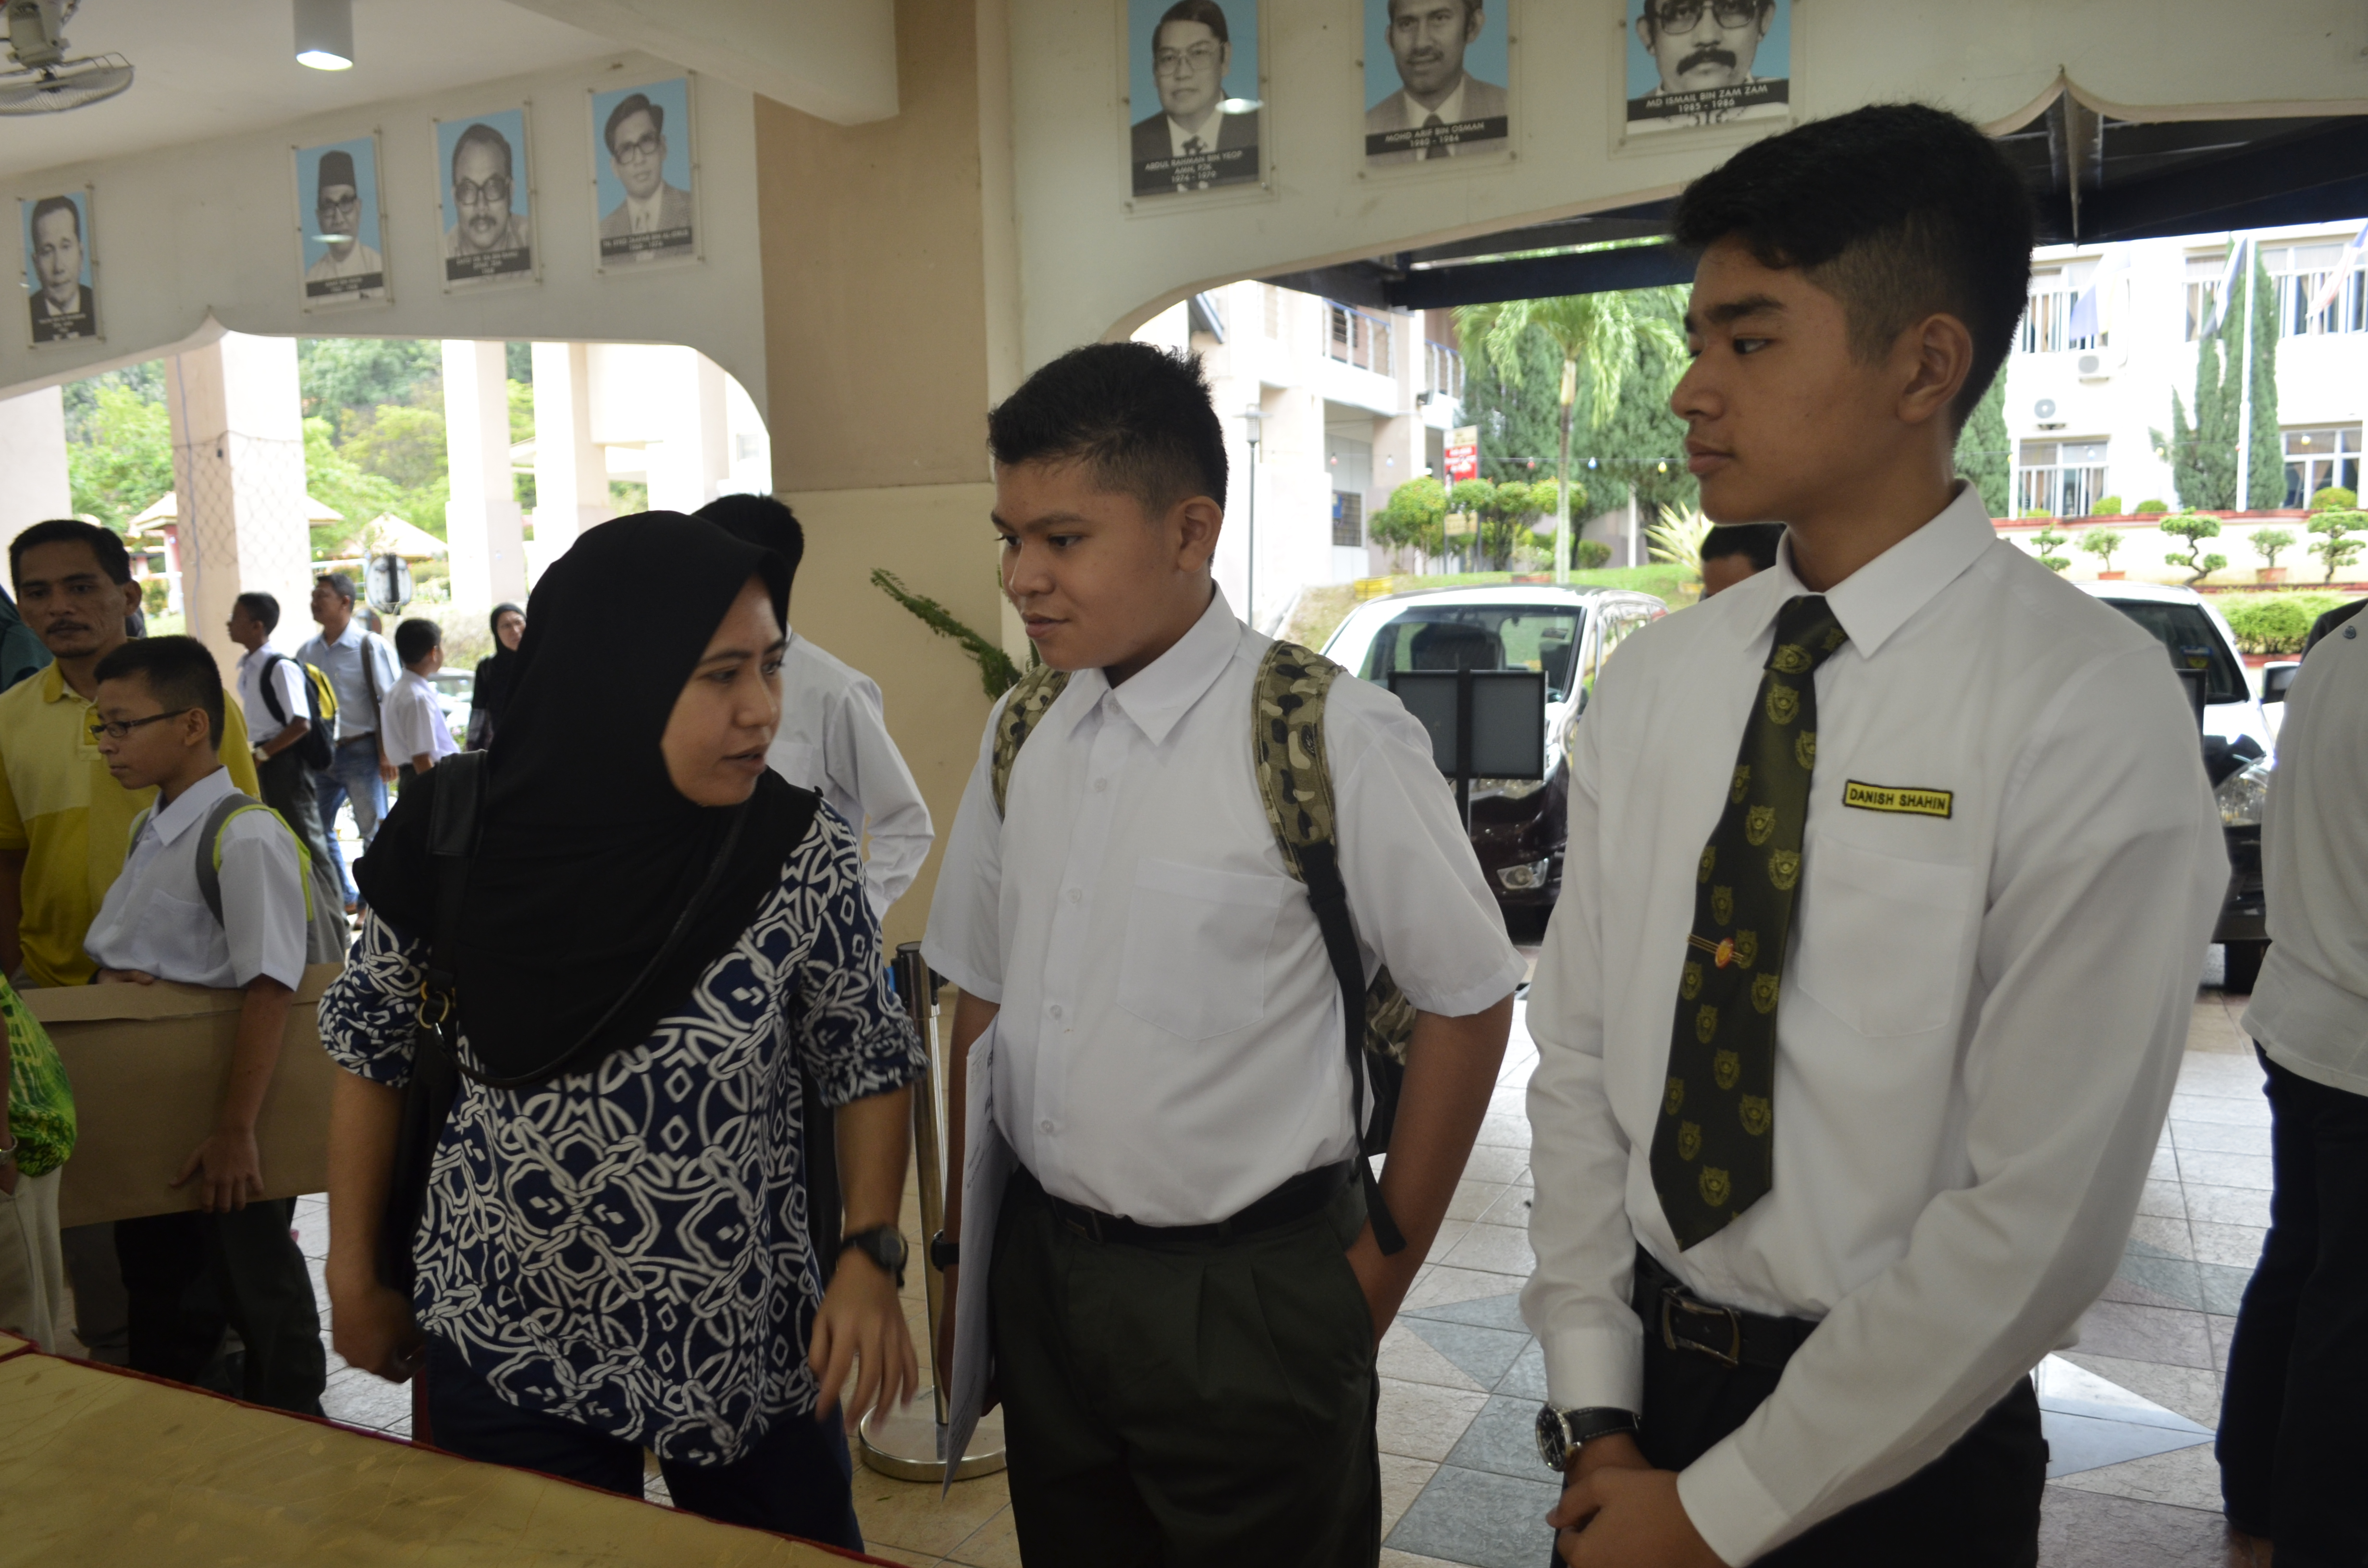 SUNGAI GADUT, SEREMBAN - Scores of new, bright minded faces filled the foyer hall as the latest addition to our prestigious school registered early in the morning. With the help of the teachers and selected students, the registration went smoothly.